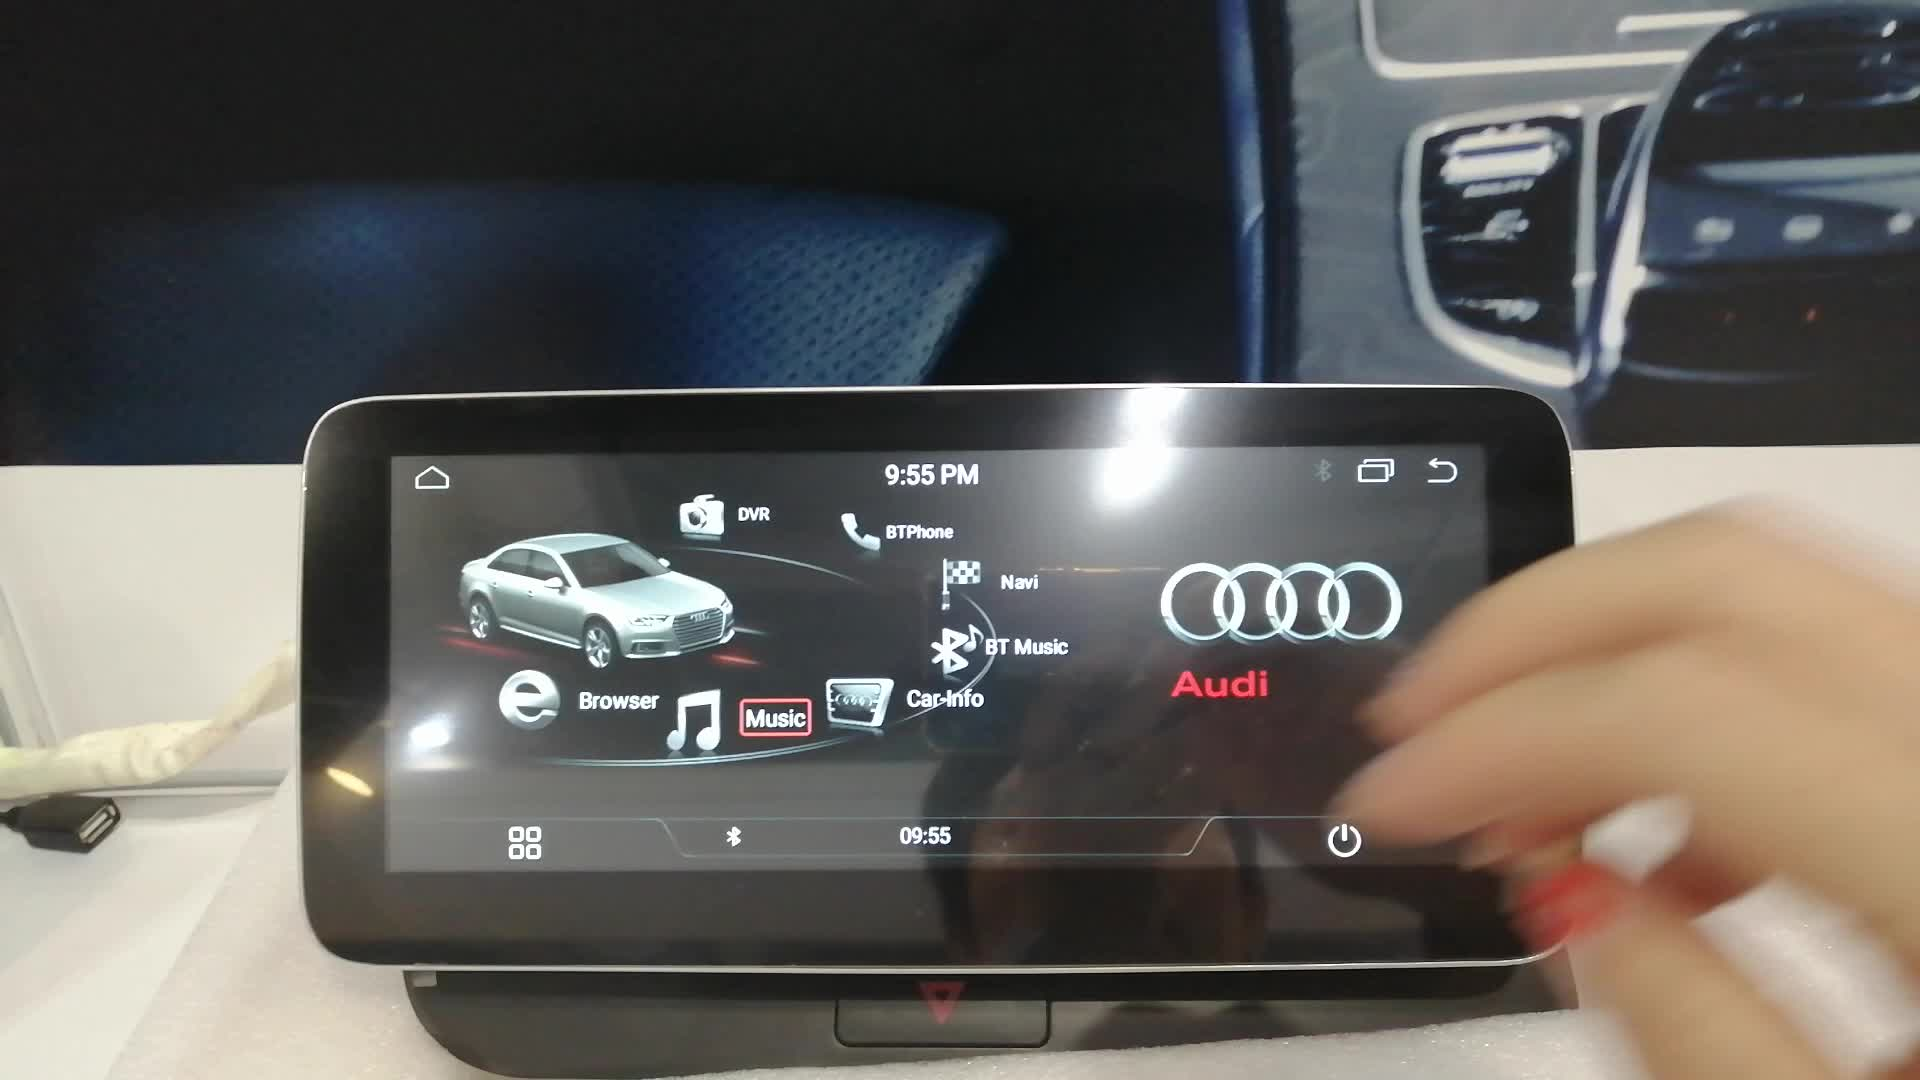 Ugode Android 10,0 10,25 zoll Screen Auto Multimedia Stereo Video Player für AUDI Q5 LHD hohe ebene